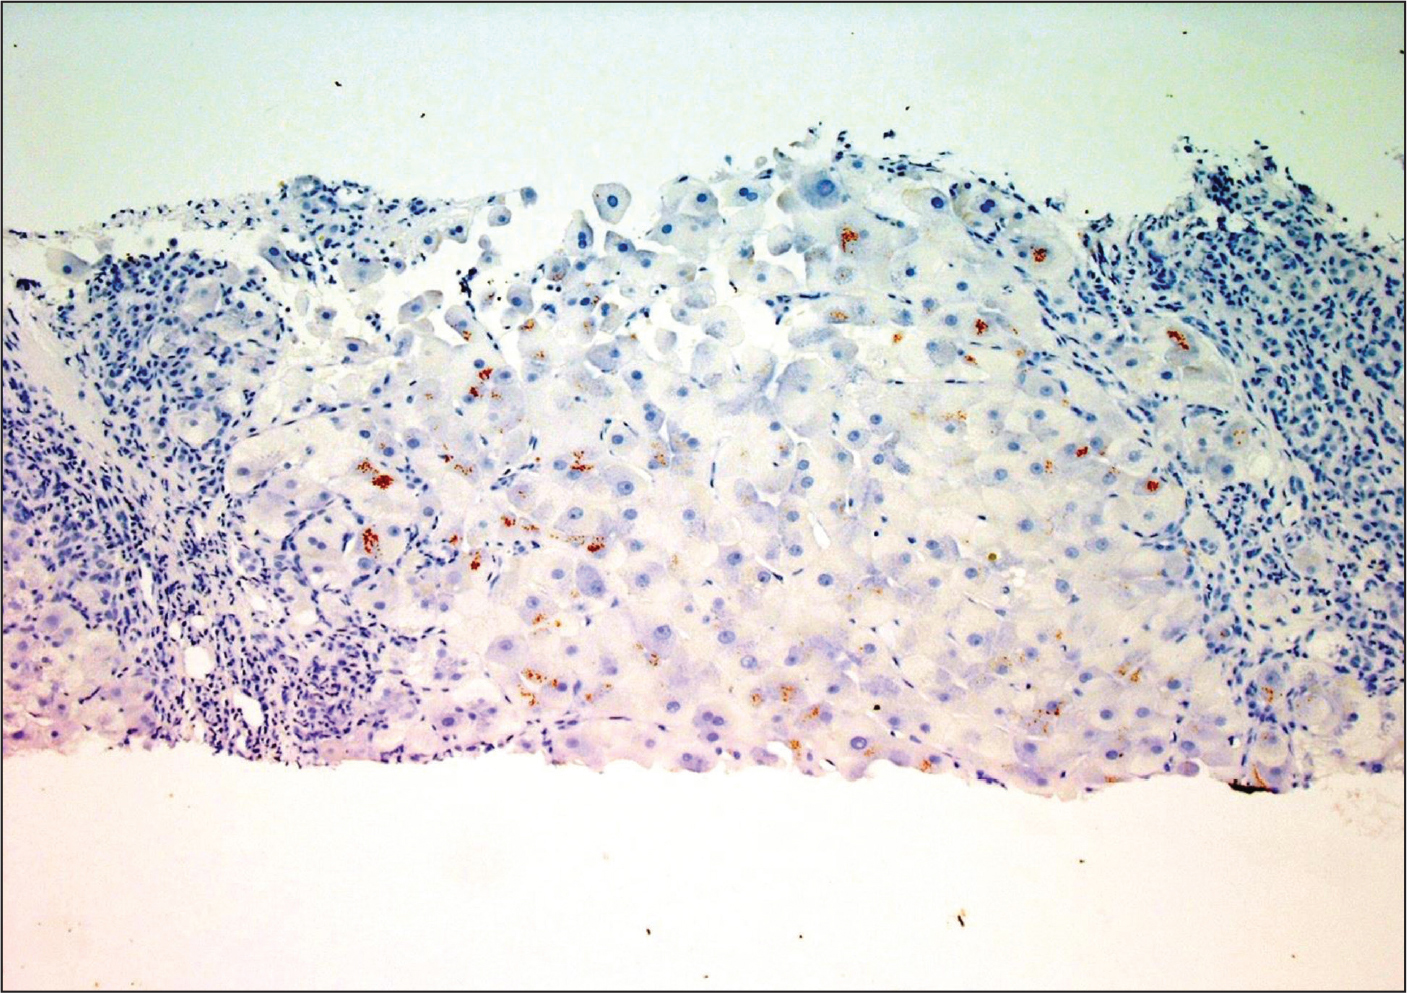 A copper stain of a liver biopsy in Wilson's disease, highlighted as red-brown granules within the hepatocytes. Original image courtesy of Dr. John Hart (Department of Pathology, The University of Chicago Medicine), reprinted with permission.